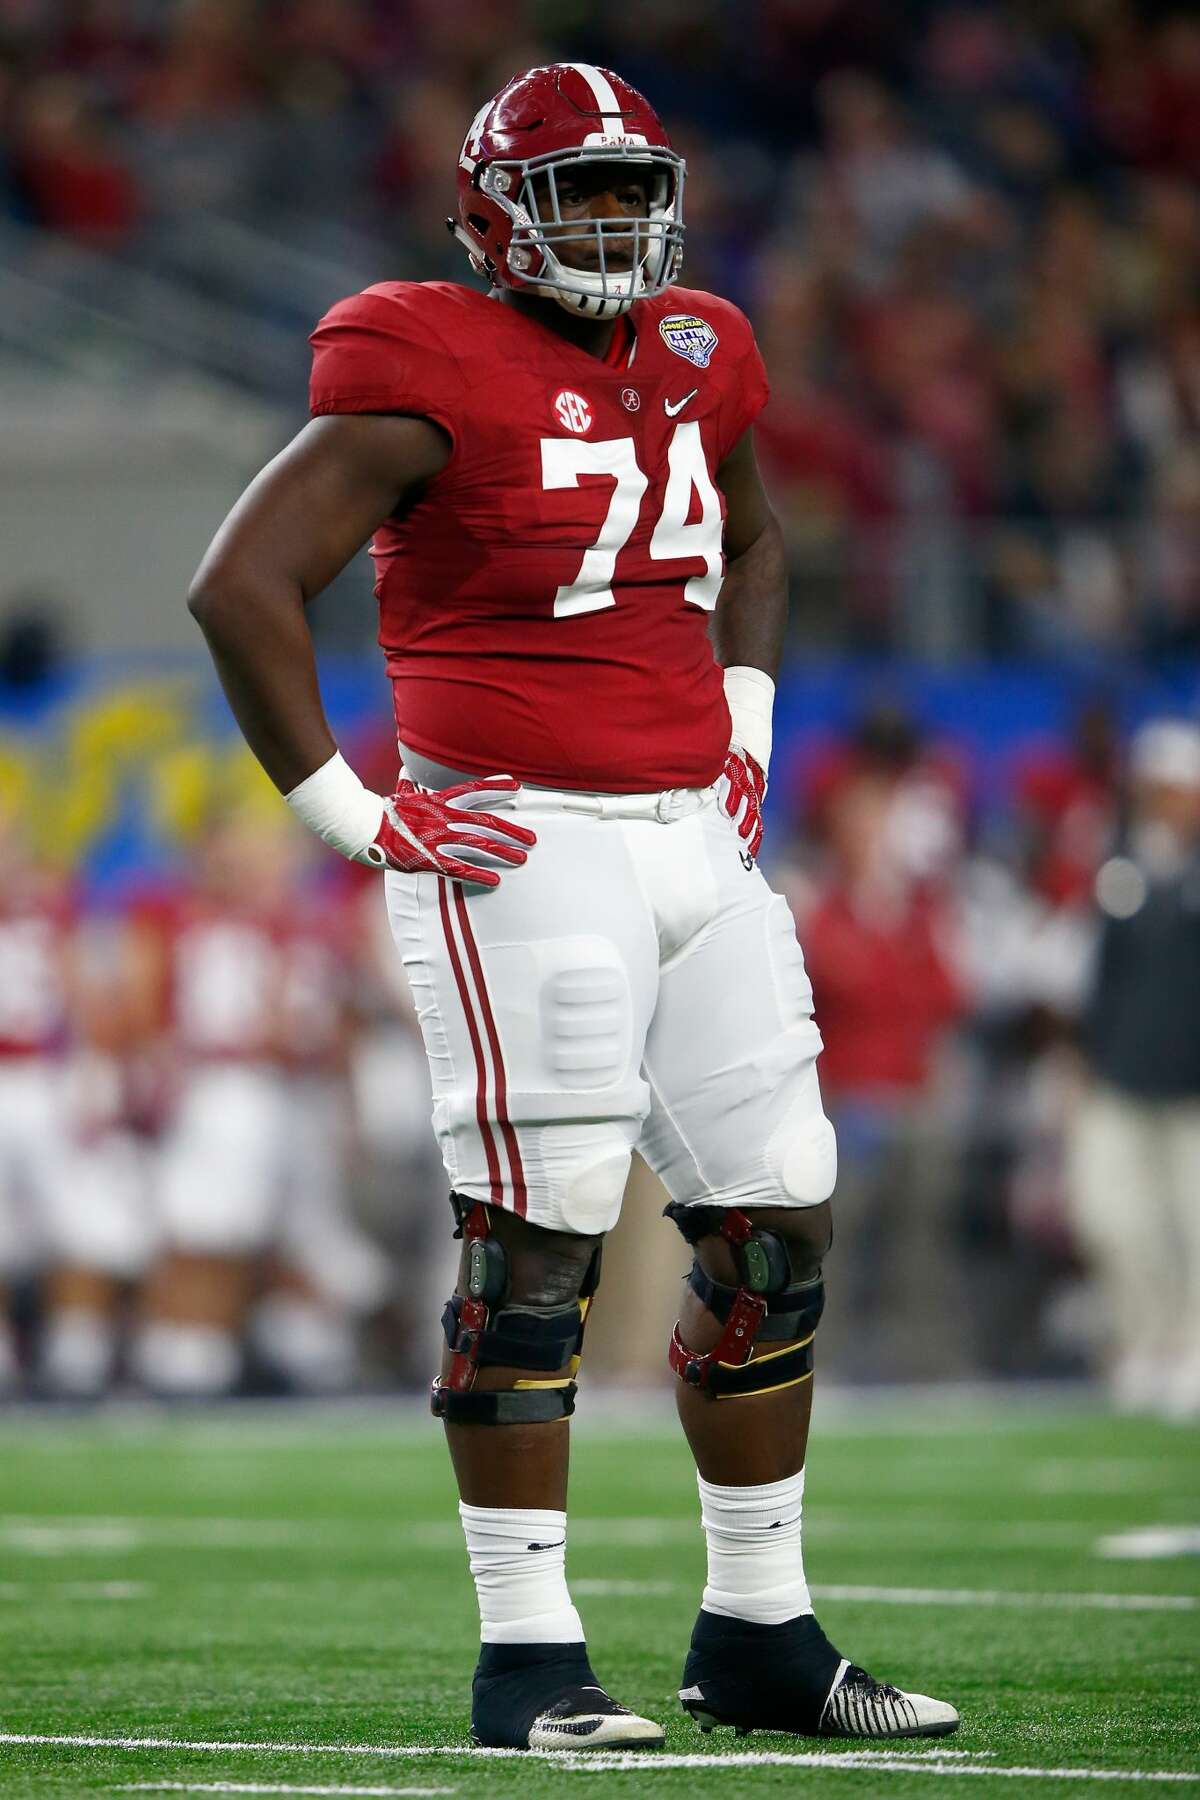 ARLINGTON, TX - DECEMBER 31: Cam Robinson #74 of the Alabama Crimson Tide looks on against the Michigan State Spartans during the Goodyear Cotton Bowl at AT&T Stadium on December 31, 2015 in Arlington, Texas. (Photo by Jamie Squire/Getty Images)